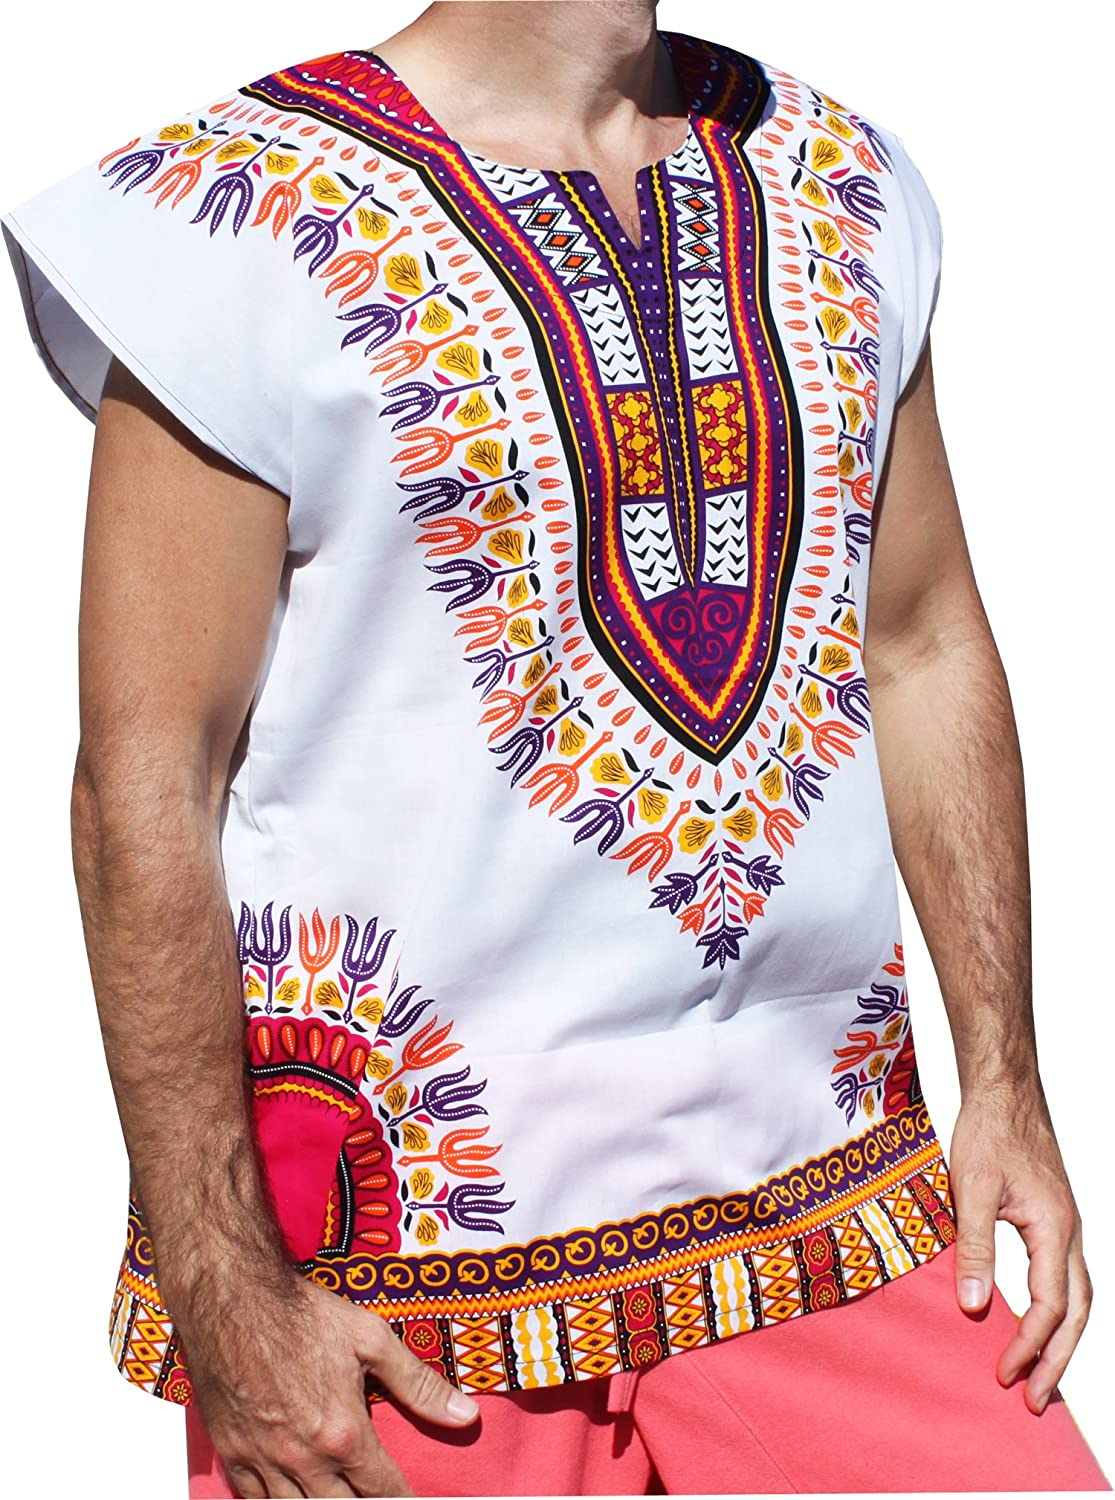 RaanPahMuang Unisex Bright Cotton Africa Dashiki Afrikan Sleeveless Cap Shirt Plus variant2149